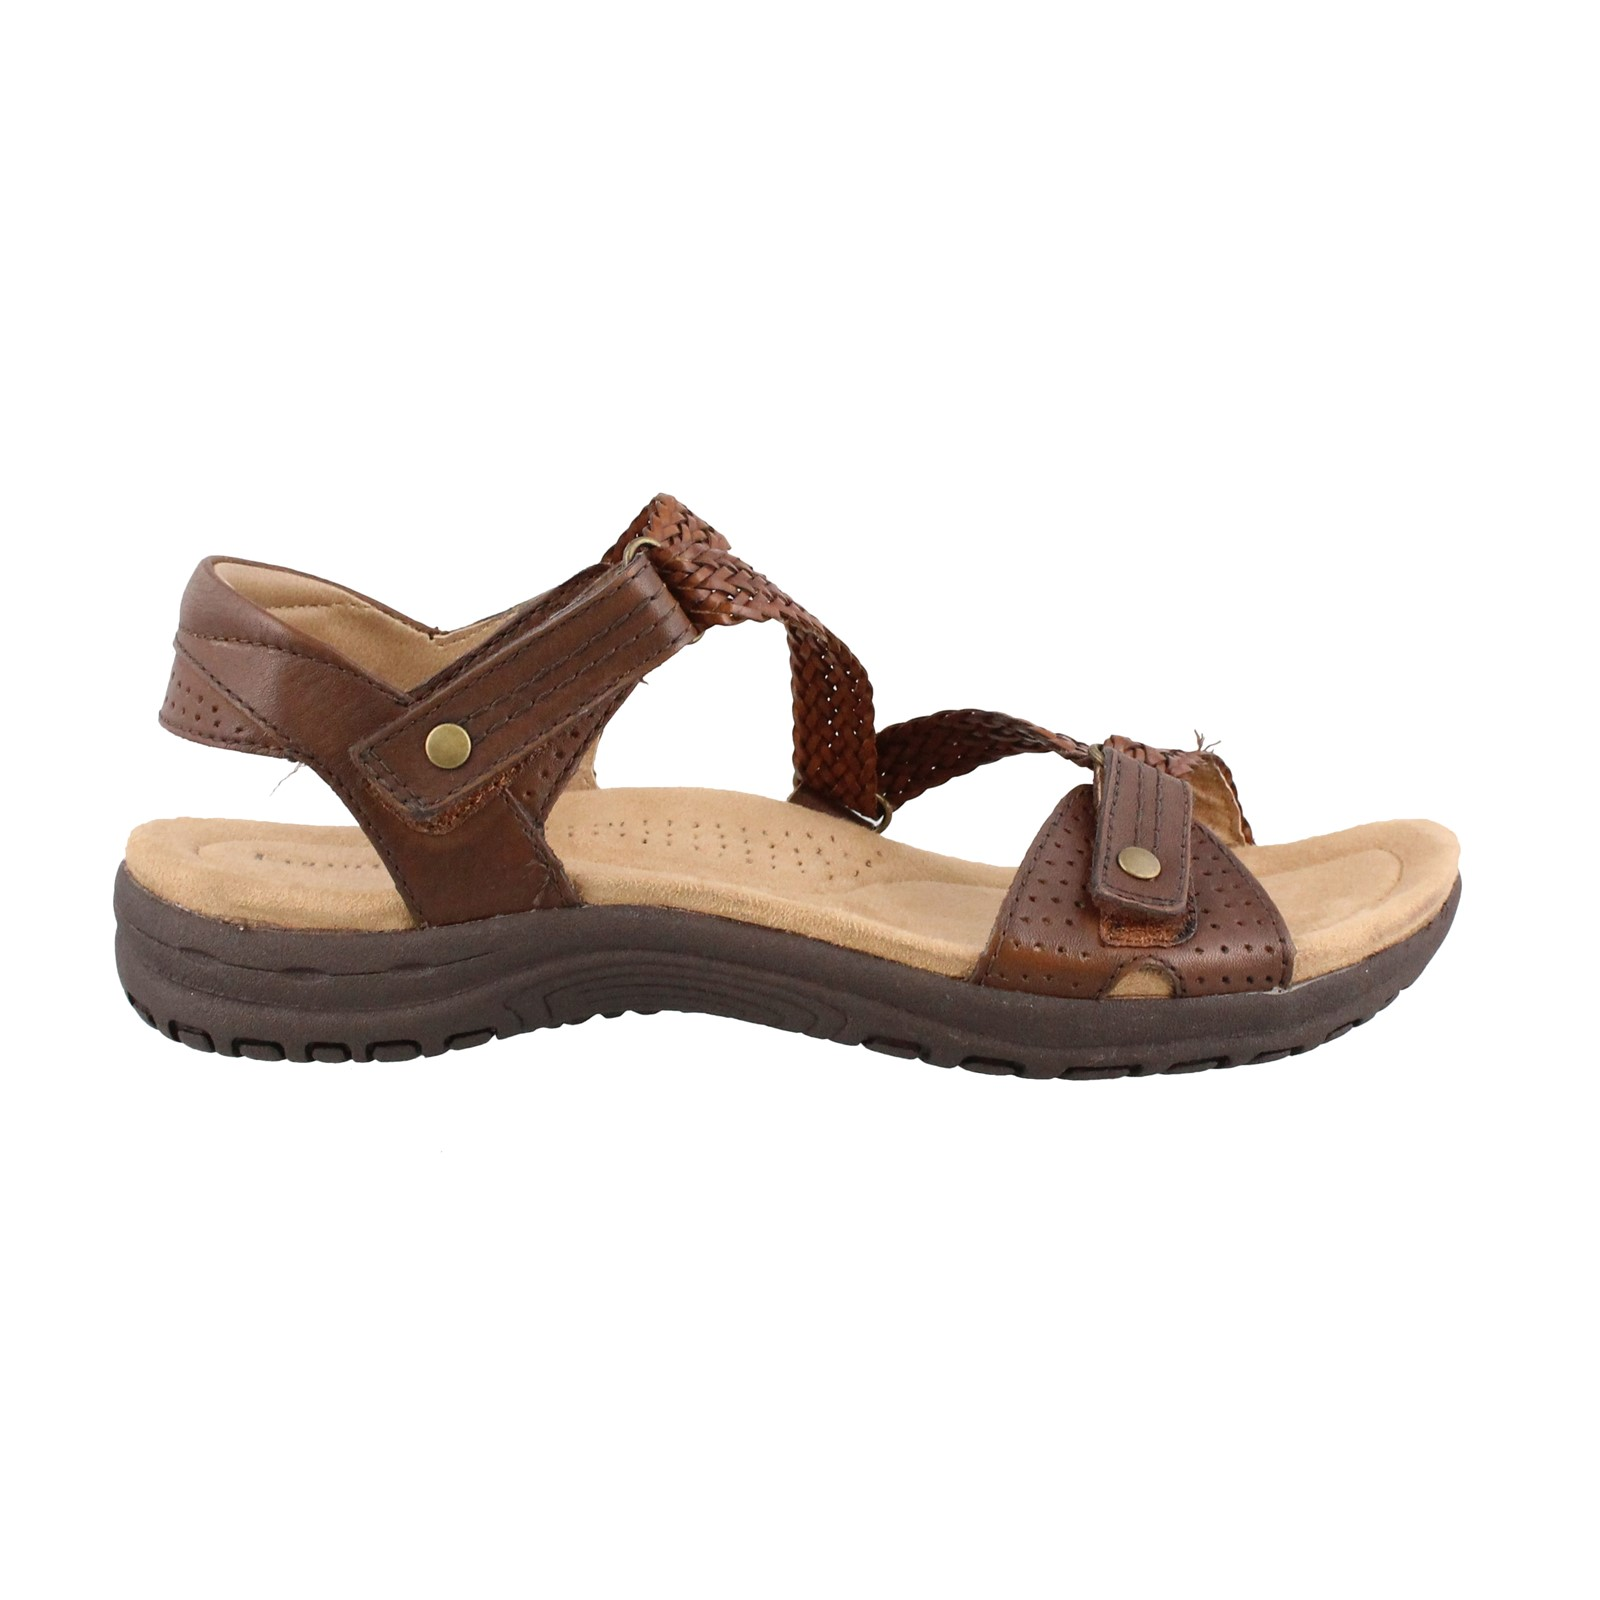 Women's Earth Origins, Stella Low Heel Sandals